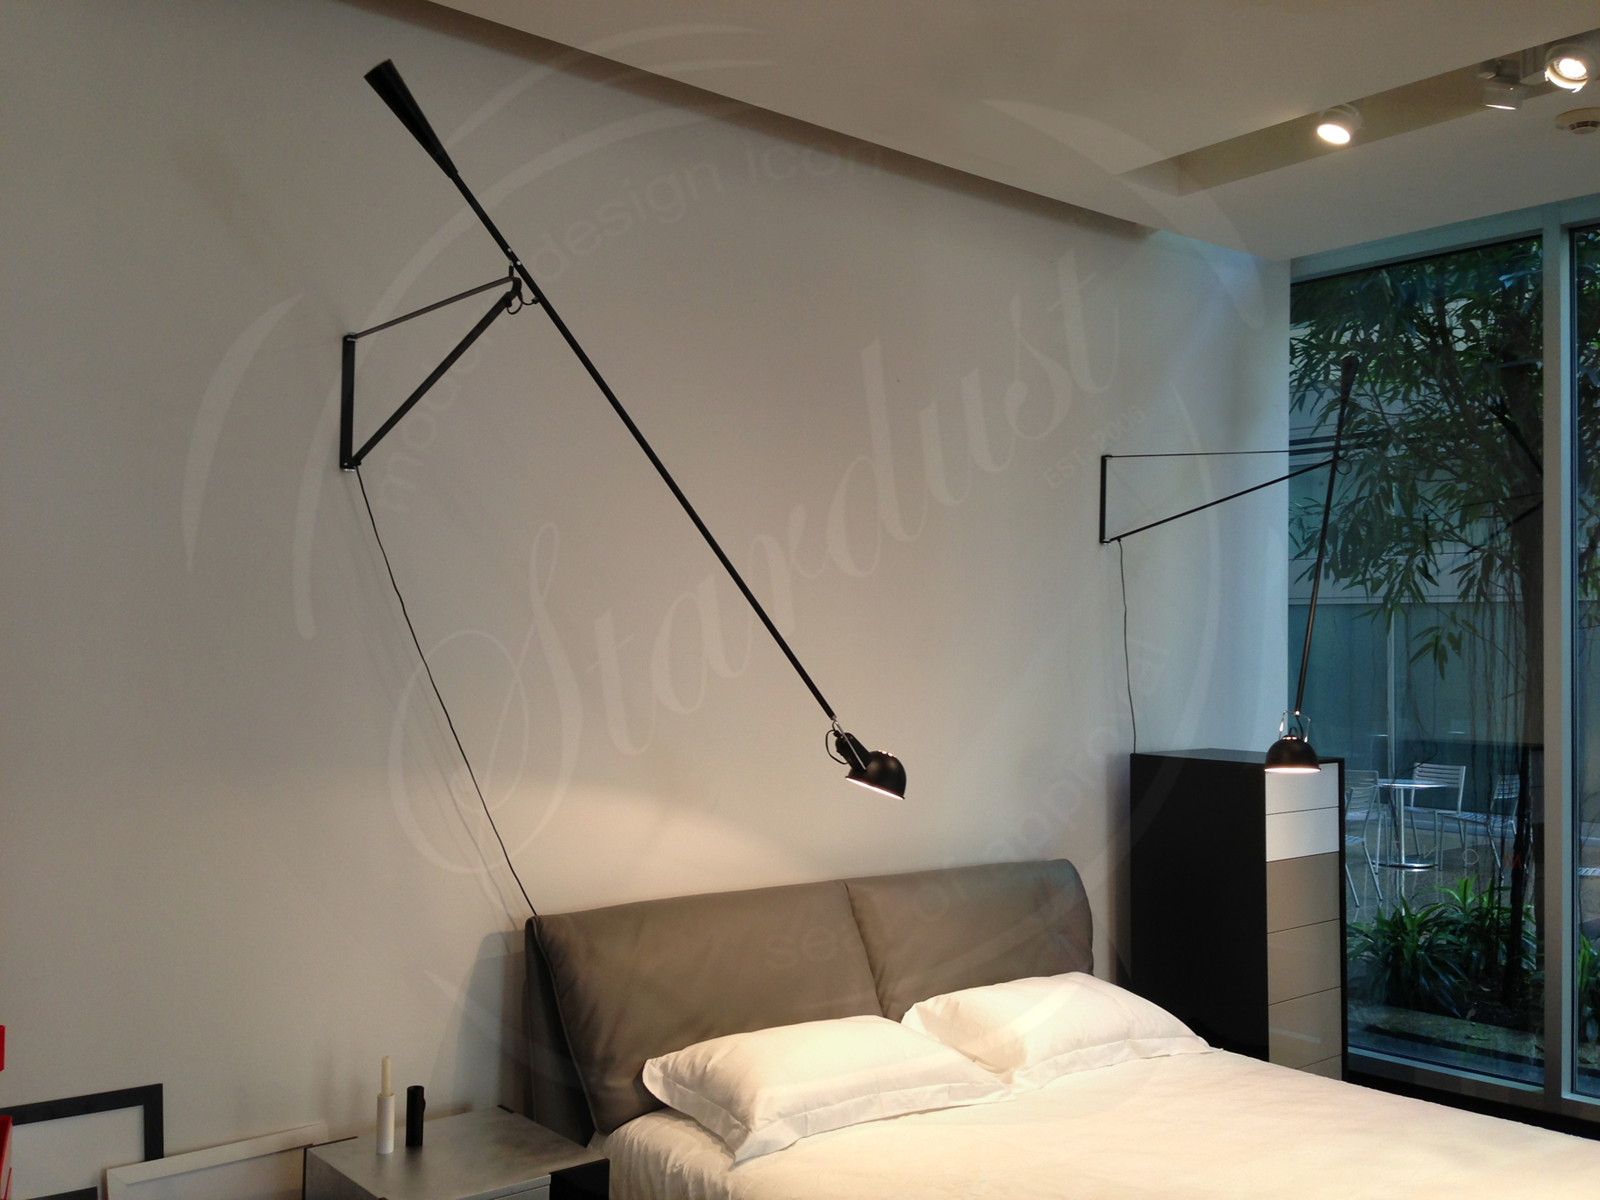 Pin by TU Sachai on Lighting Pinterest